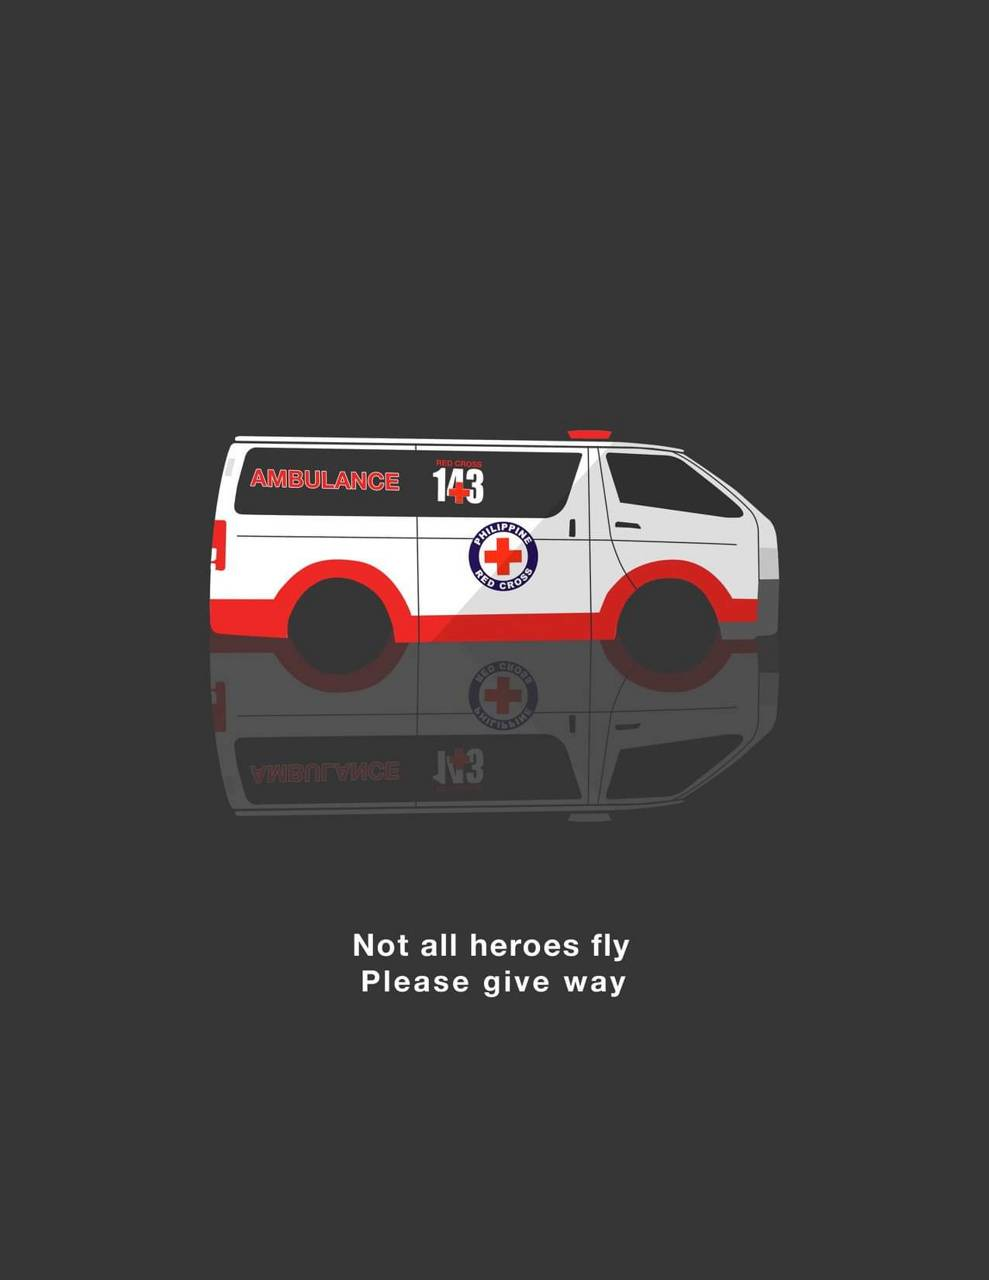 Not all heroes fly